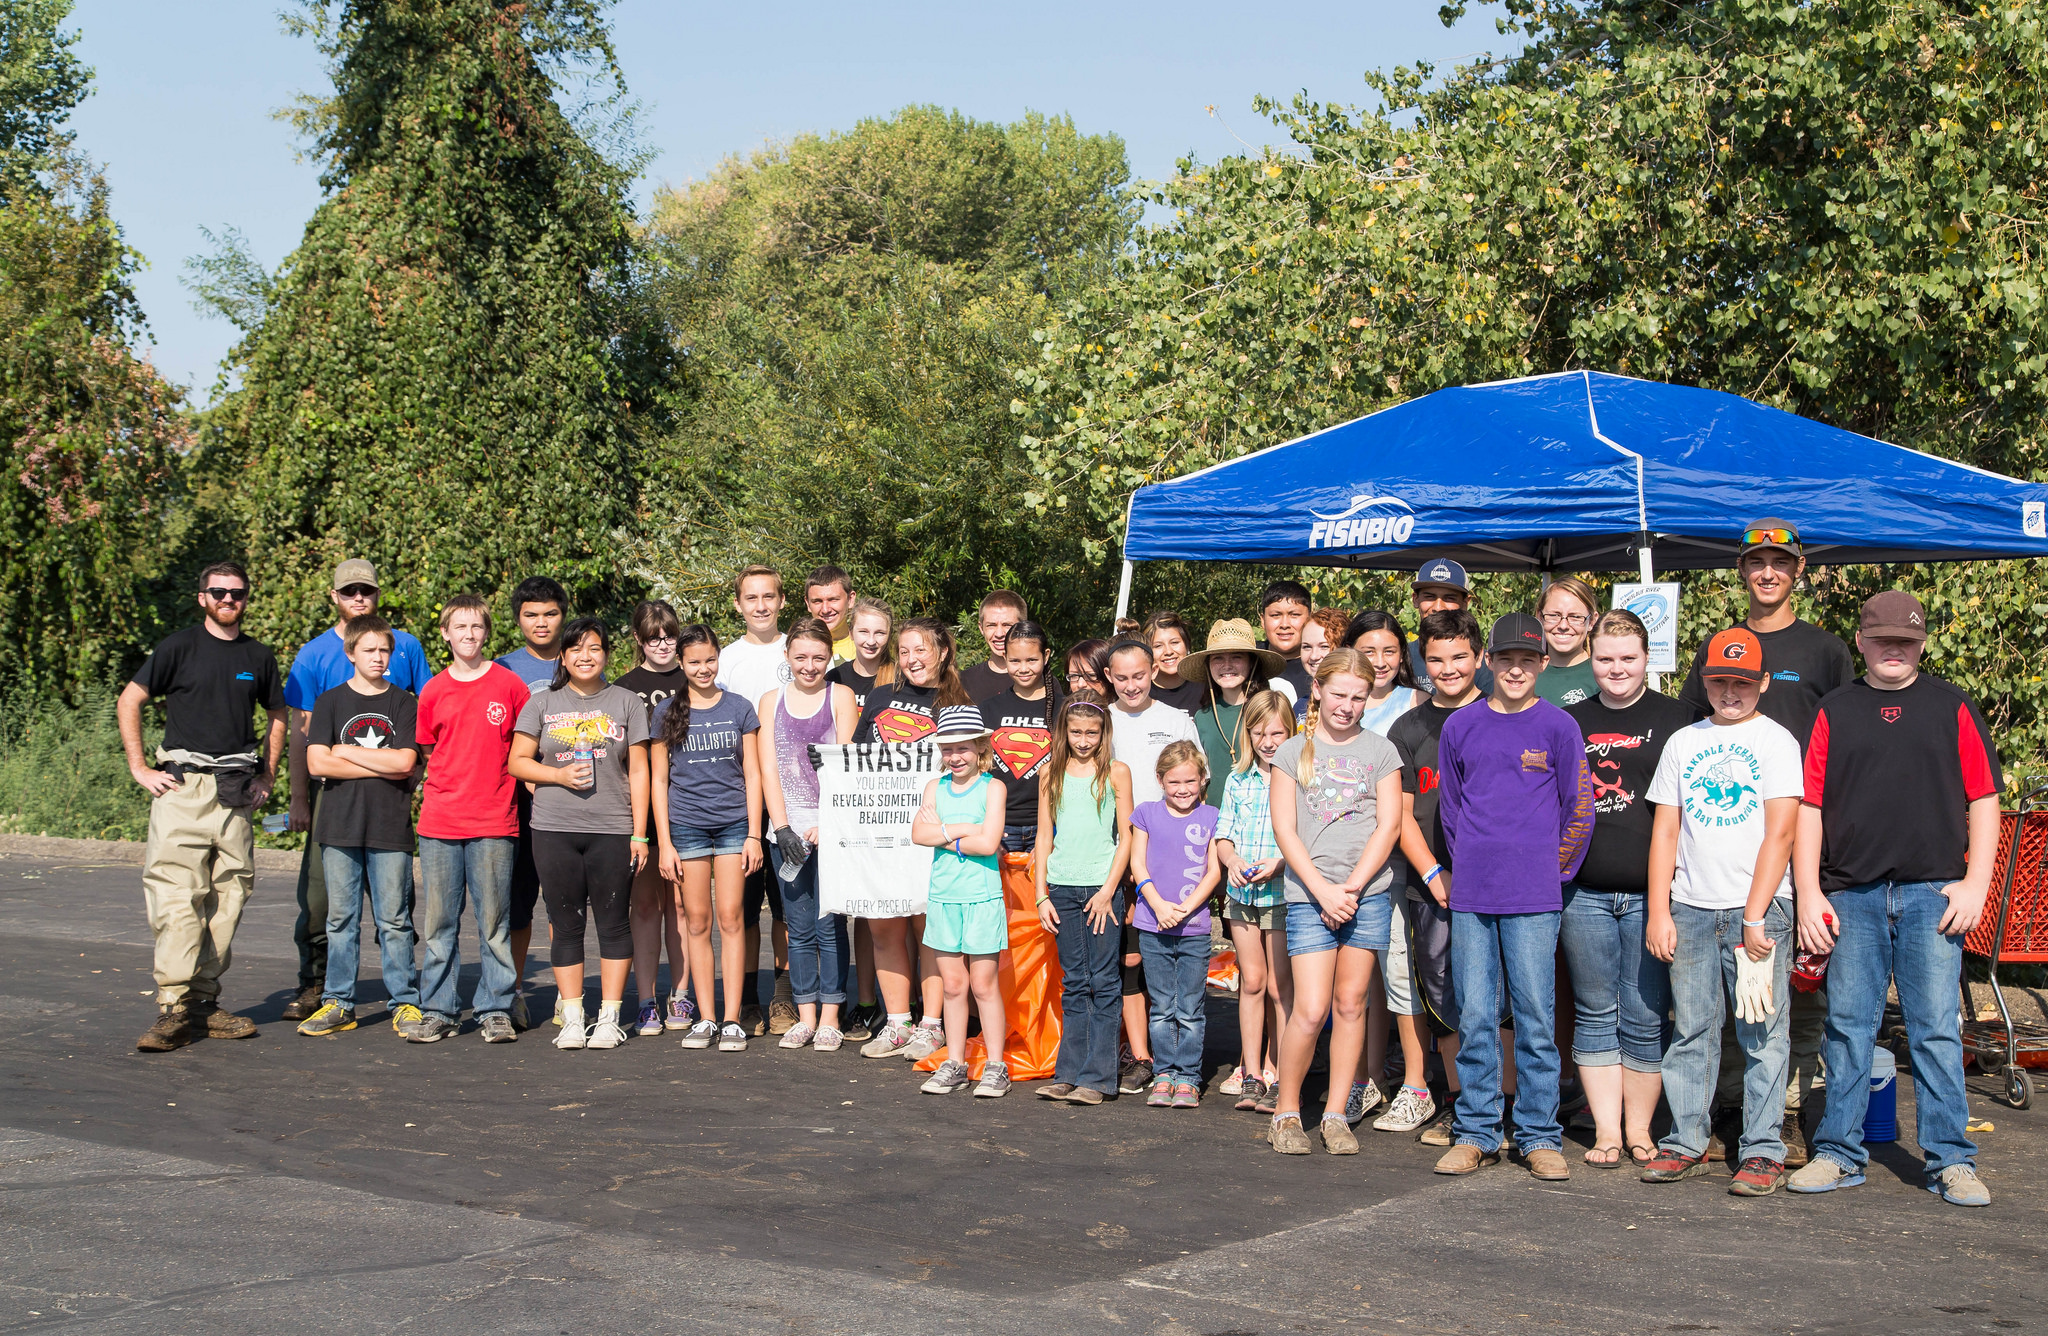 Stanislaus River Clean Up